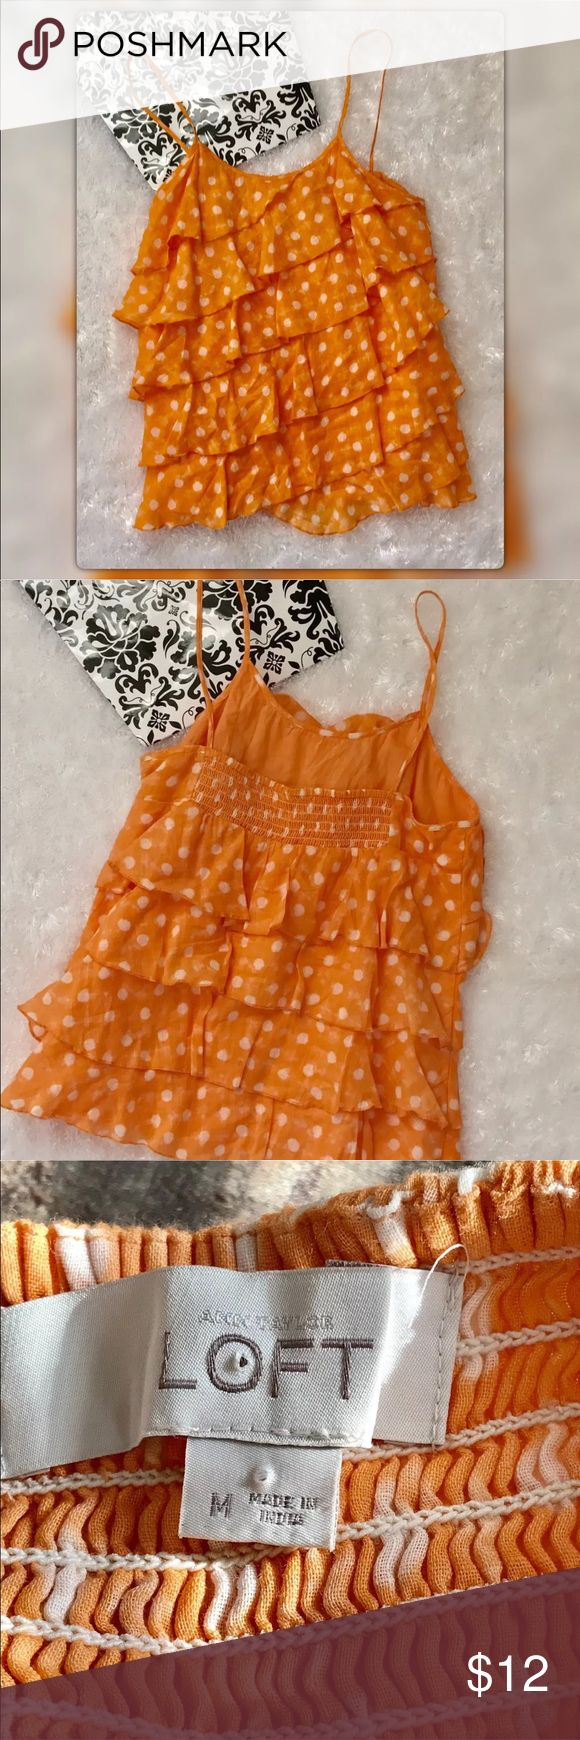 """LOFT M Orange Semi Sheer Layered Tank Cami Top LOFT M Orange Semi Sheer Layered Tank Cami Top. Pit to pit measures 17.5"""" Length 26"""". Gently used with no flaws. Thank you for checking out my listing Stop by Flamingos Closet where something special is waiting for you ❤️ LOFT Tops Camisoles"""